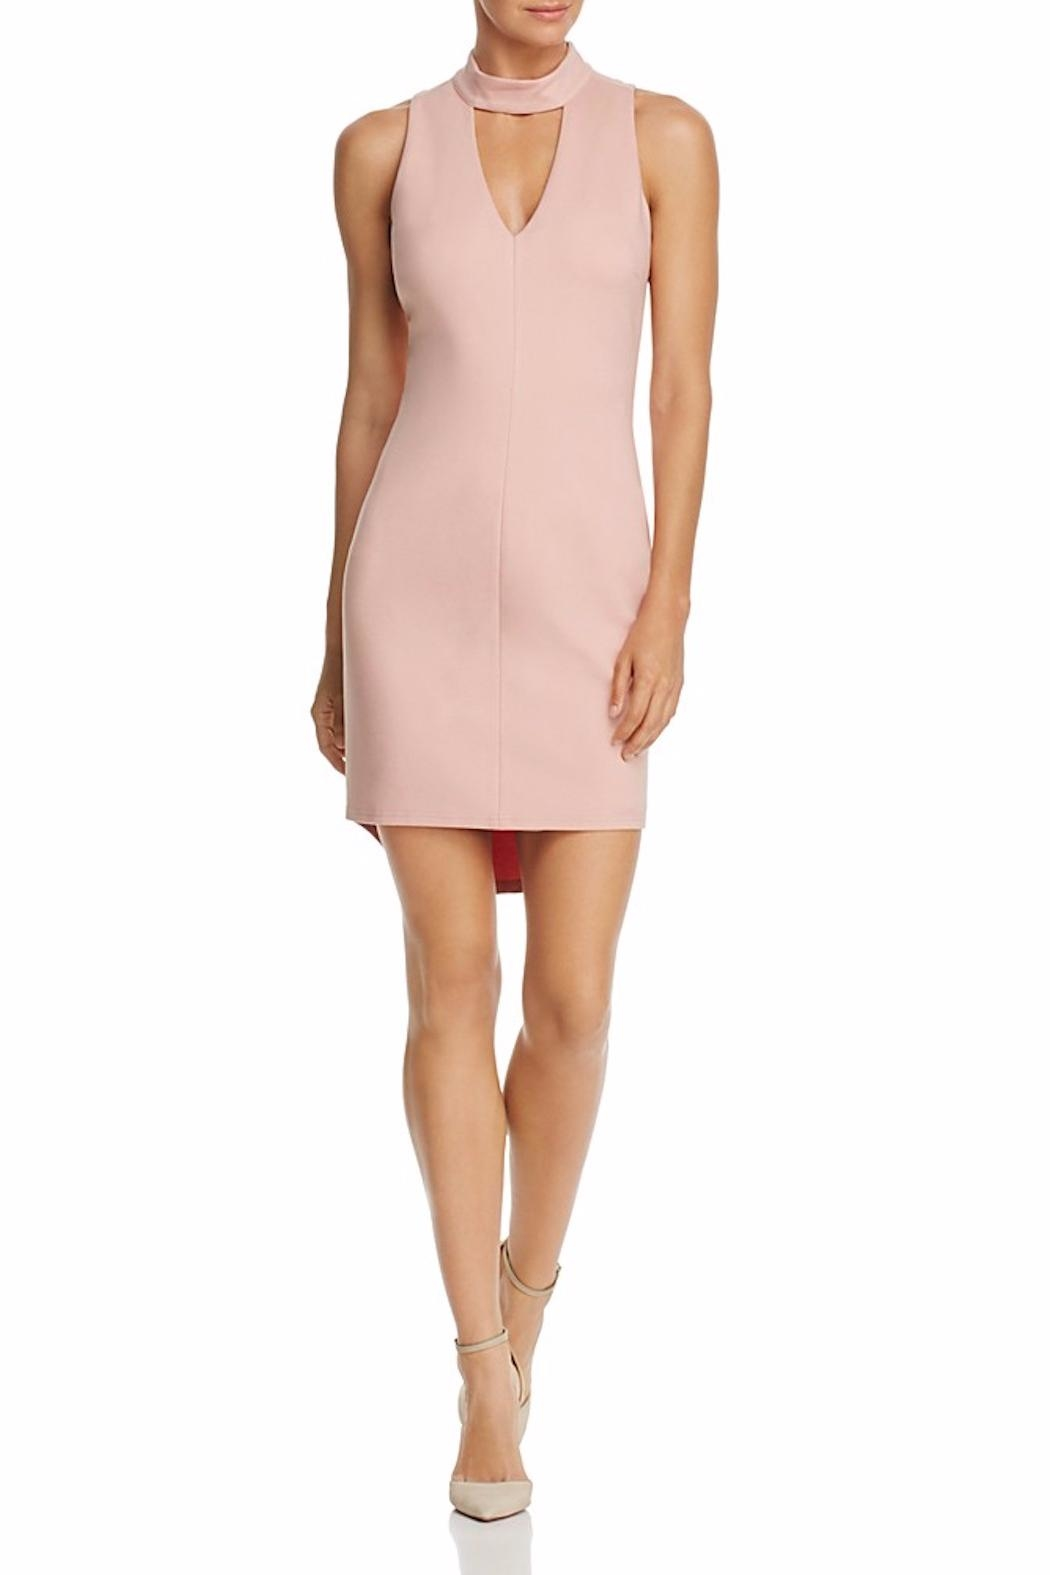 Adelyn Rae Blush Keyhole Dress - Main Image